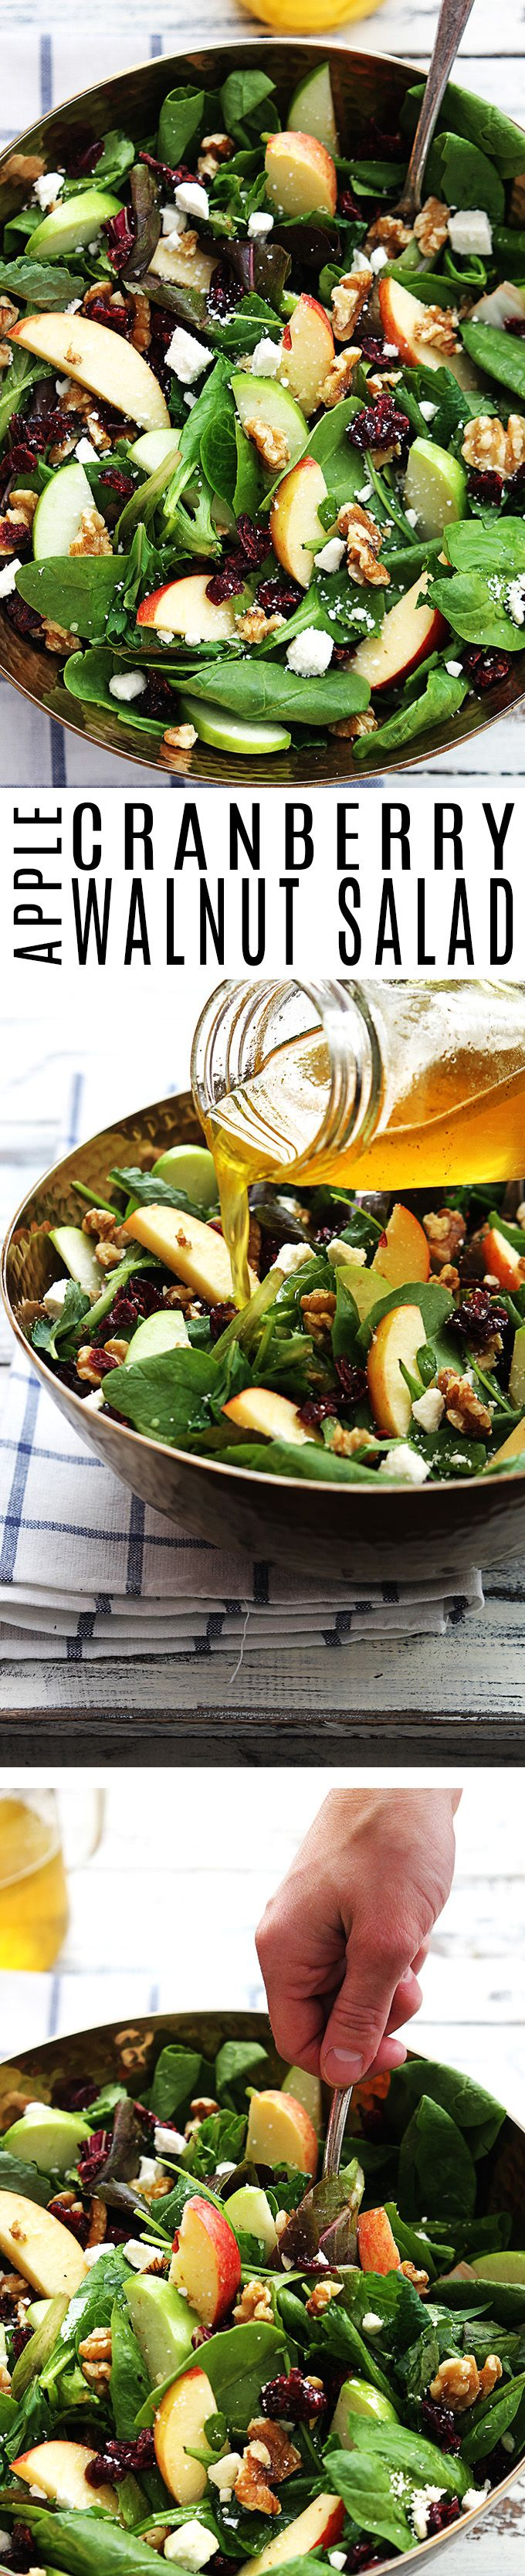 Apple Cranberry Walnut Salad | Crisp apples, dried cranberries, feta cheese, and hearty walnuts come together in a fresh Autumn salad.